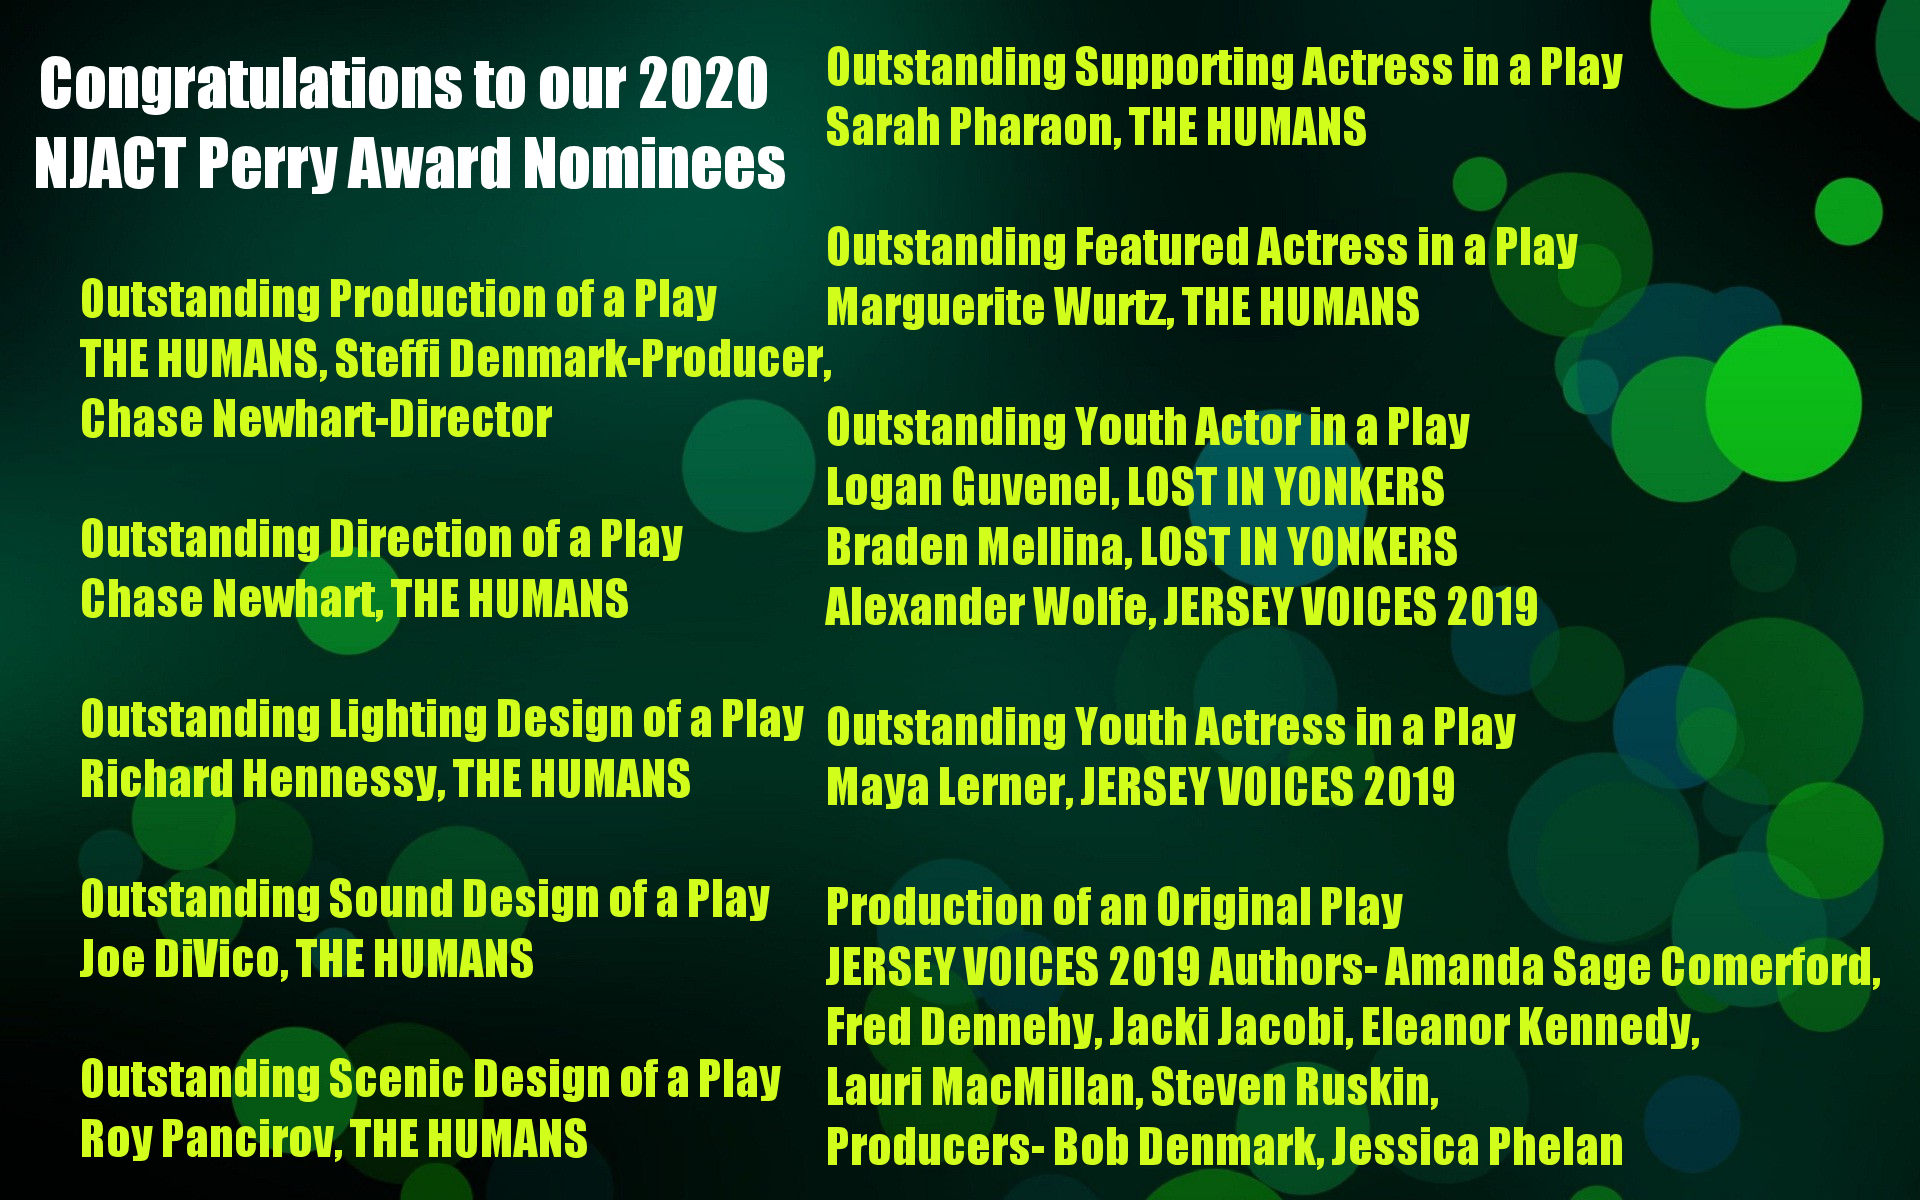 2020 NJACT Perry Award Nominations